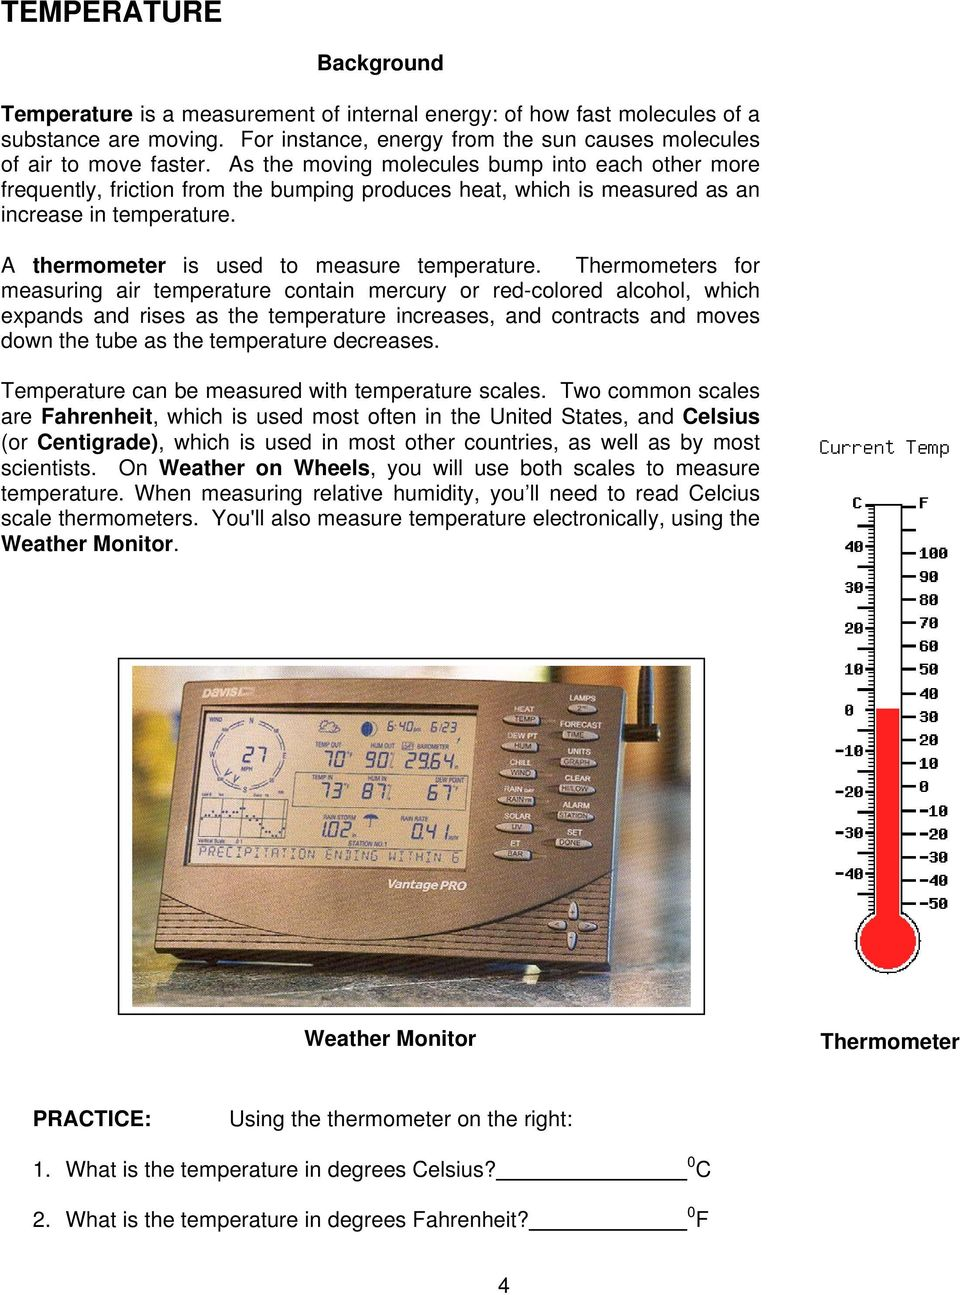 Thermometers for measuring air temperature contain mercury or red-colored alcohol, which expands and rises as the temperature increases, and contracts and moves down the tube as the temperature